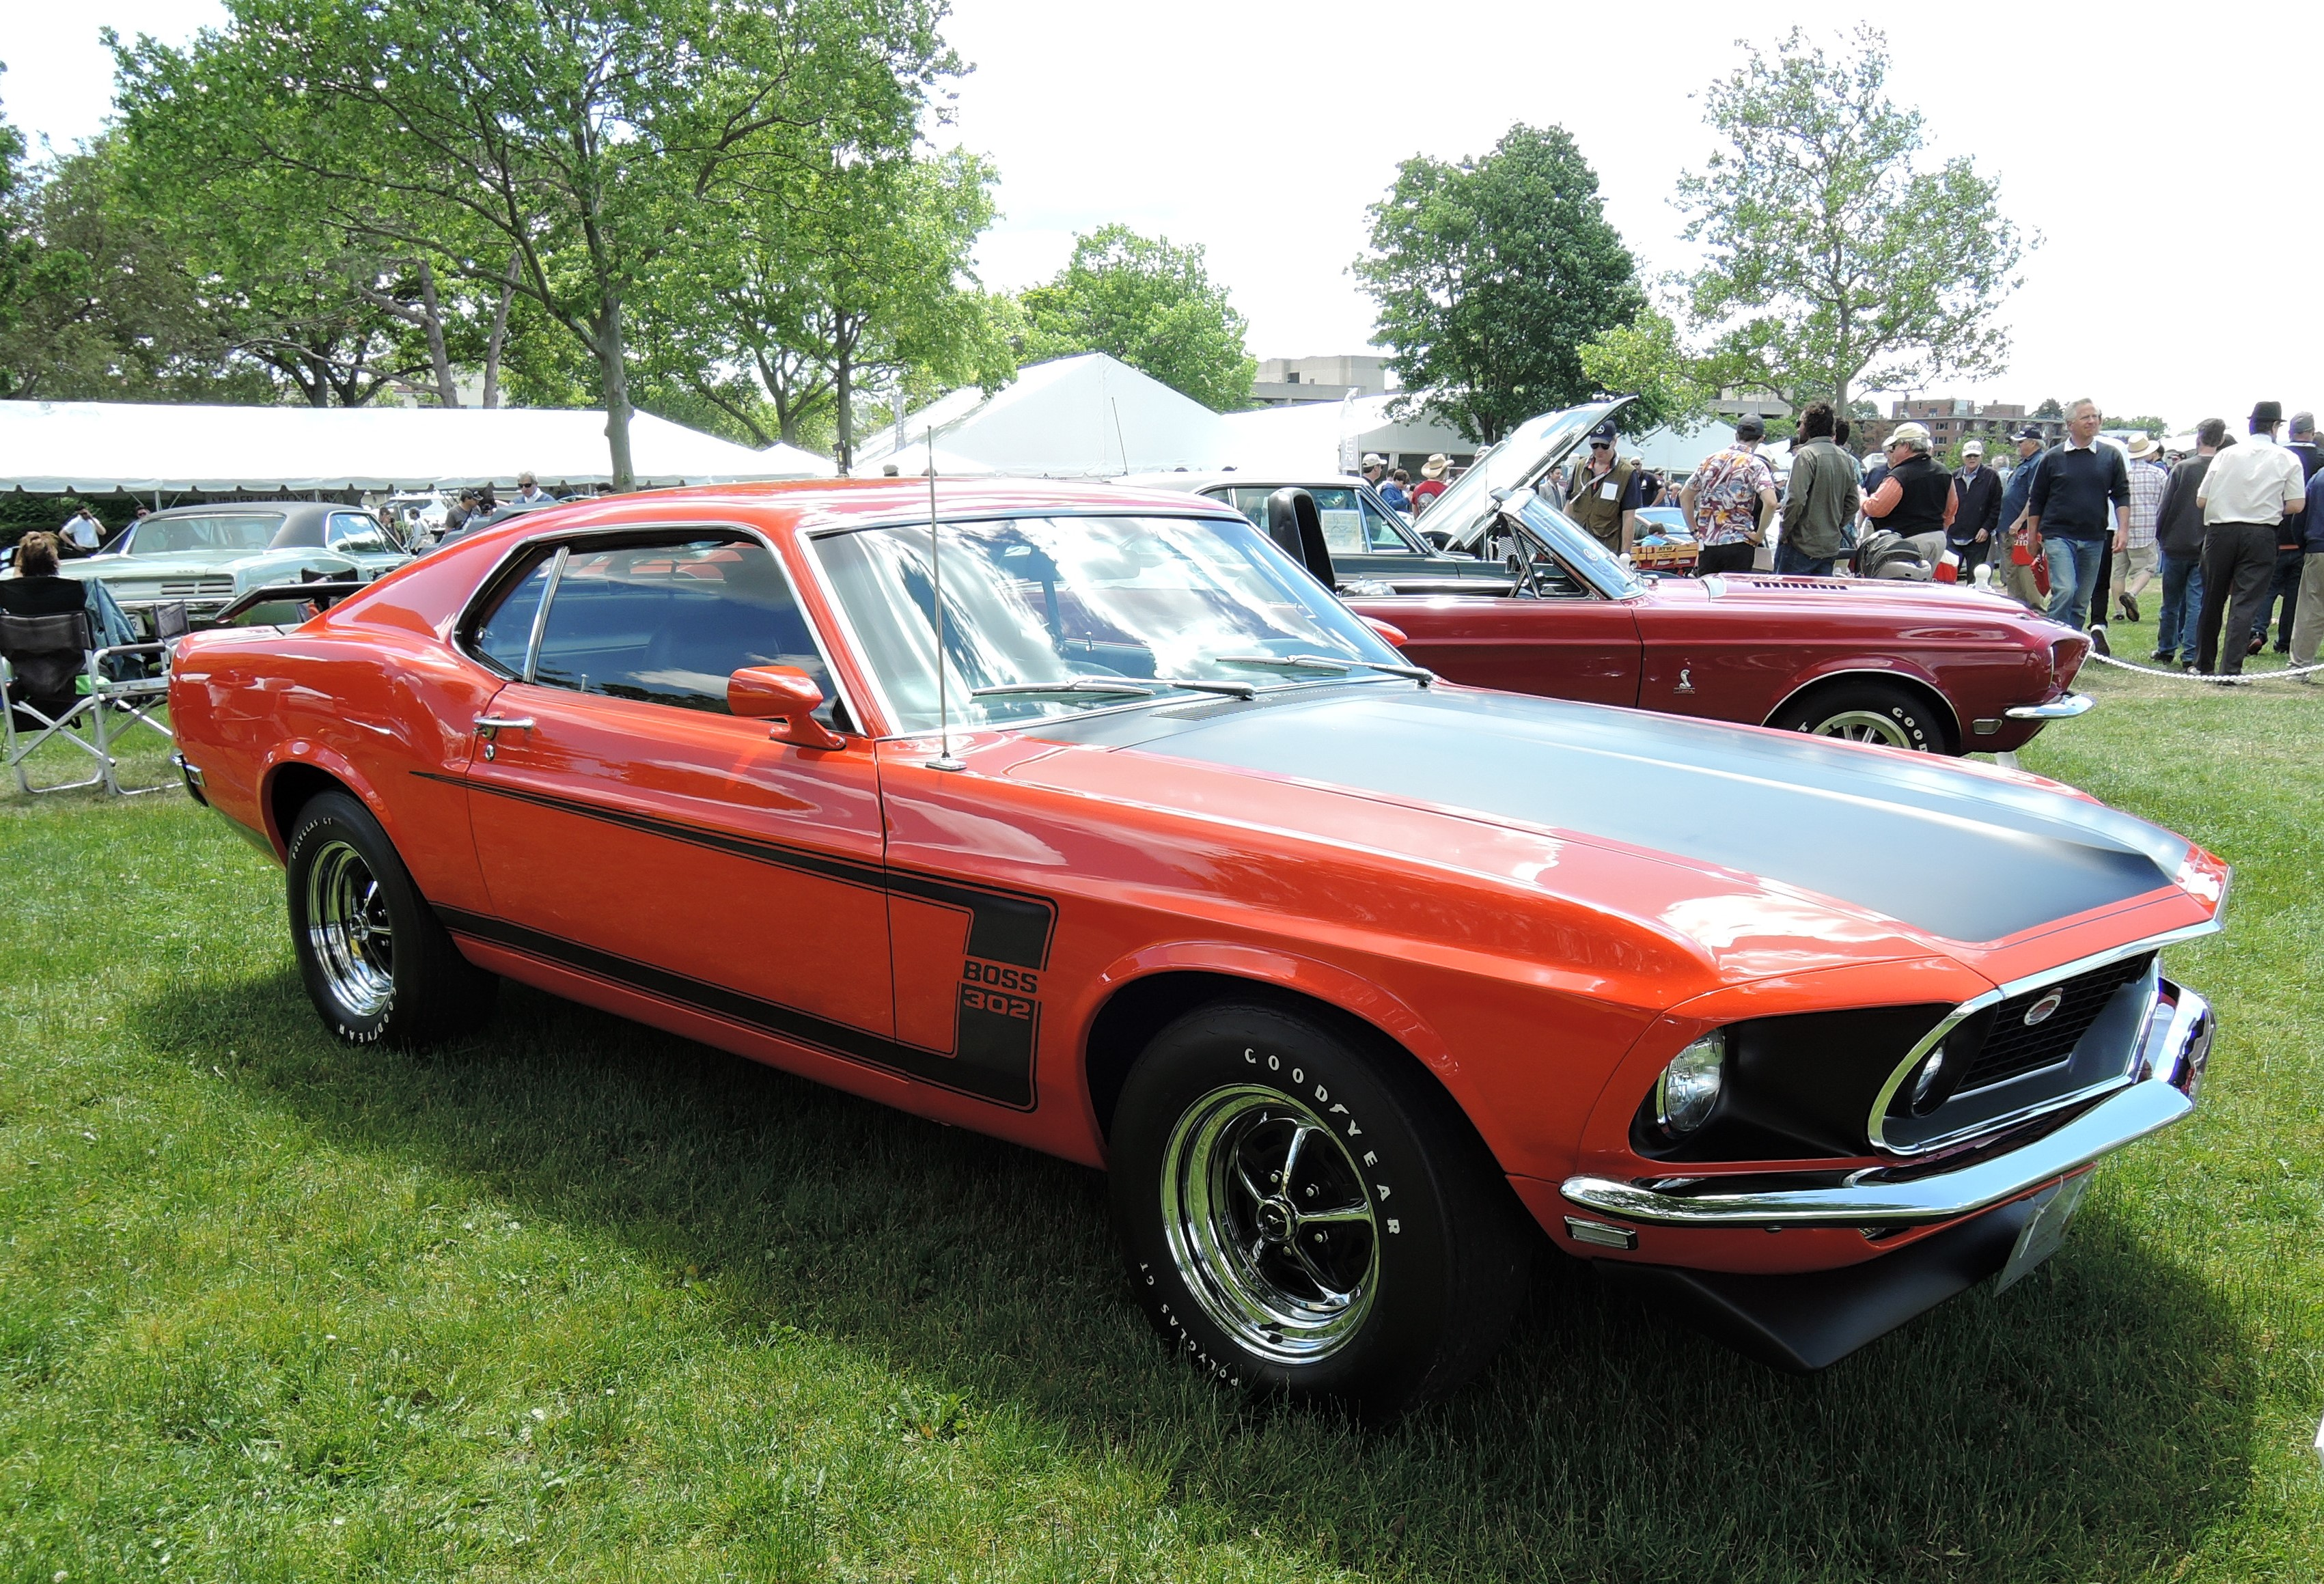 orange 1969 Ford Mustang Boss 302 - Greenwich Concours d'Elegance 2017